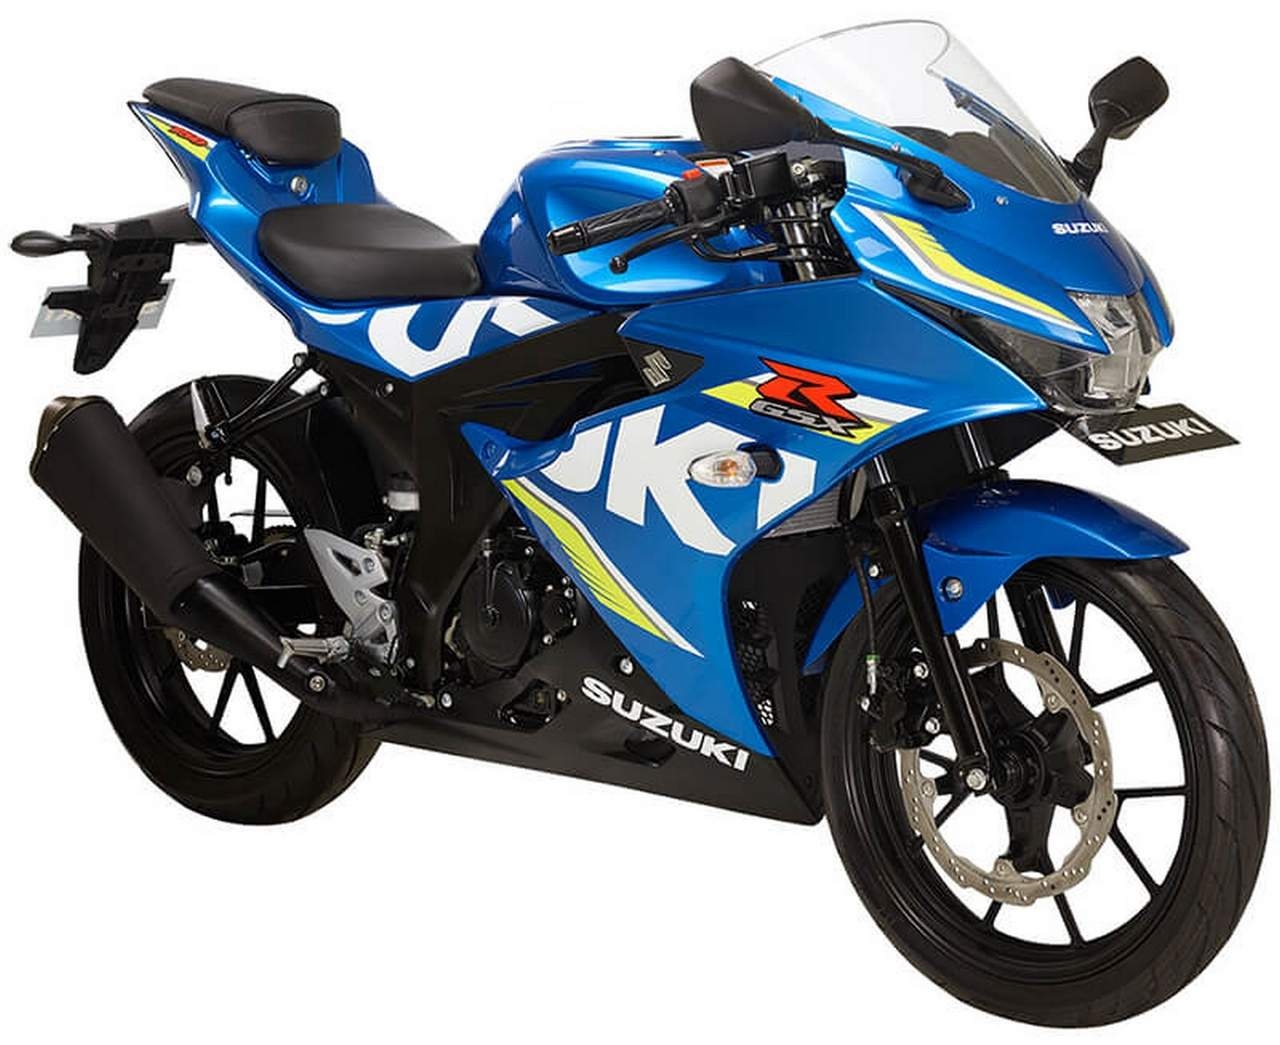 What To Get For A Suzuki Motorcycle Enthusiast